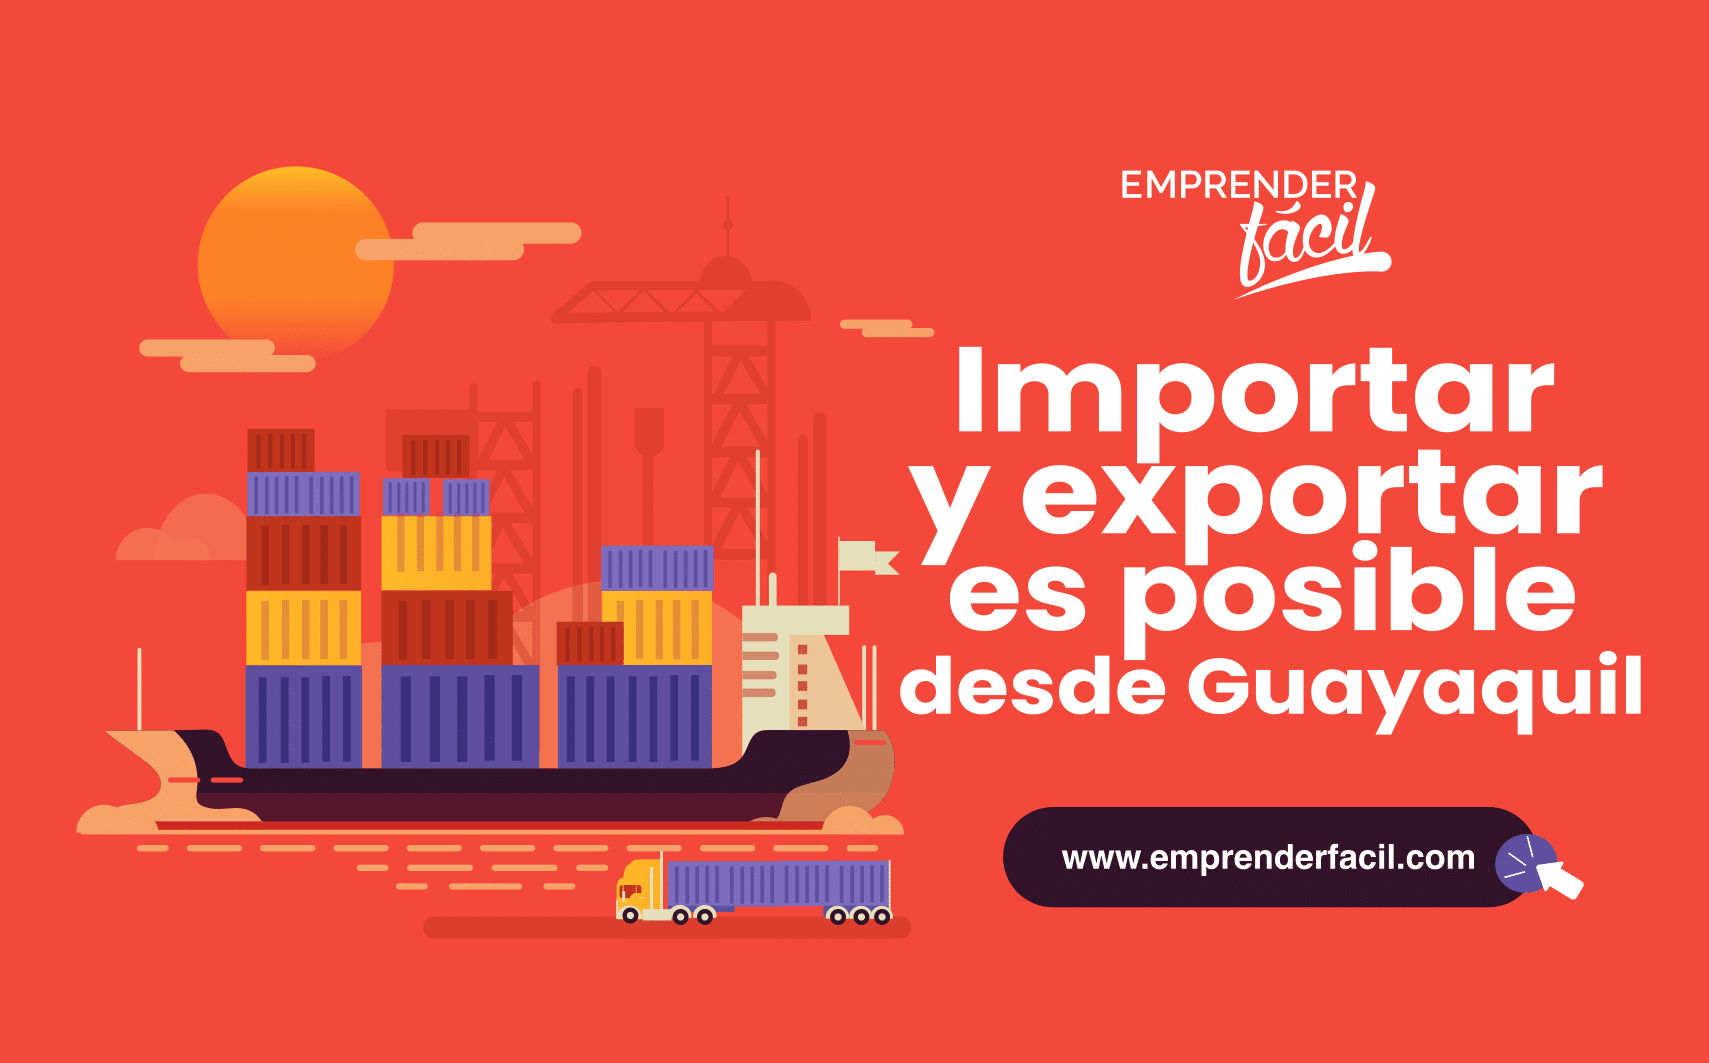 Requisitos para emprender en Guayaquil